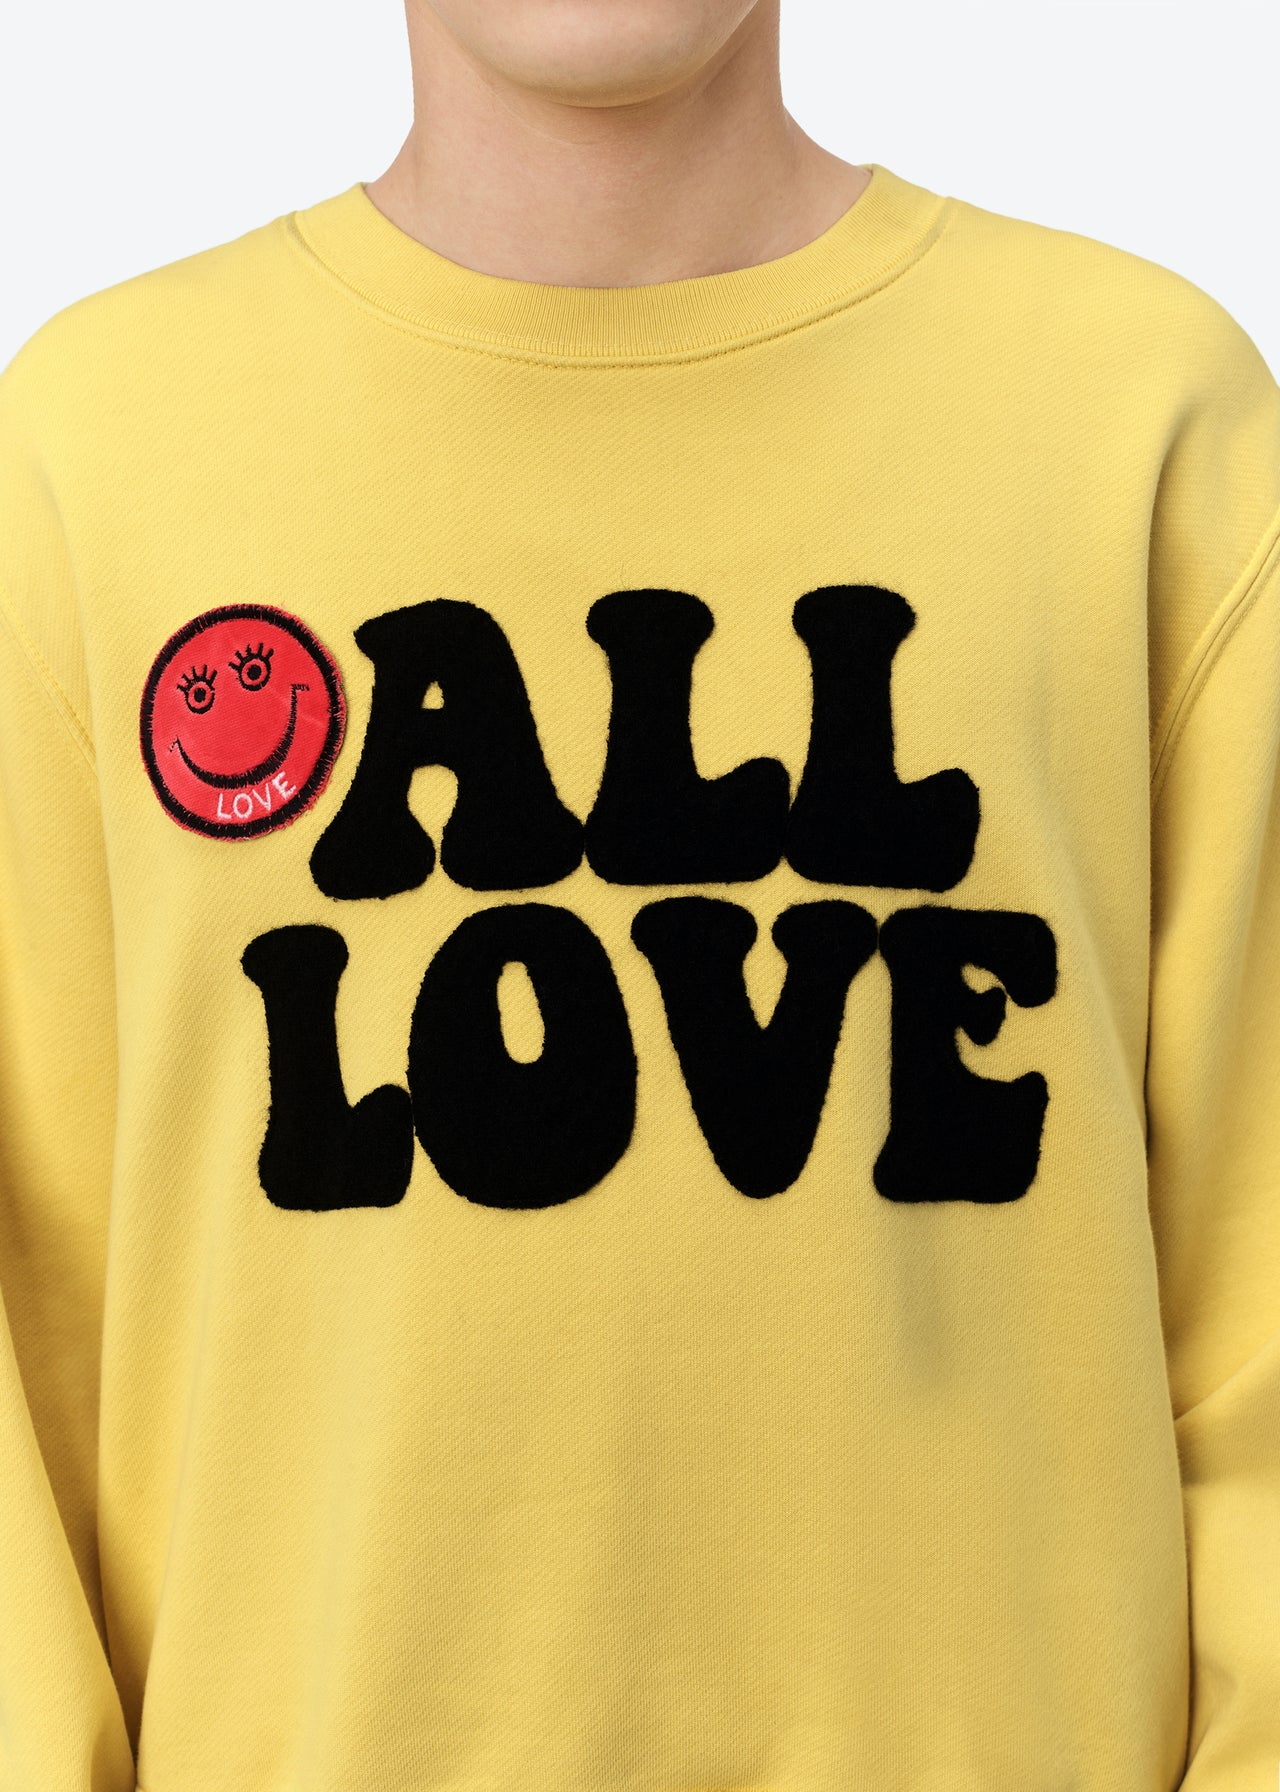 A LOVE MOVEMENT ALL LOVE CREW - CANARY